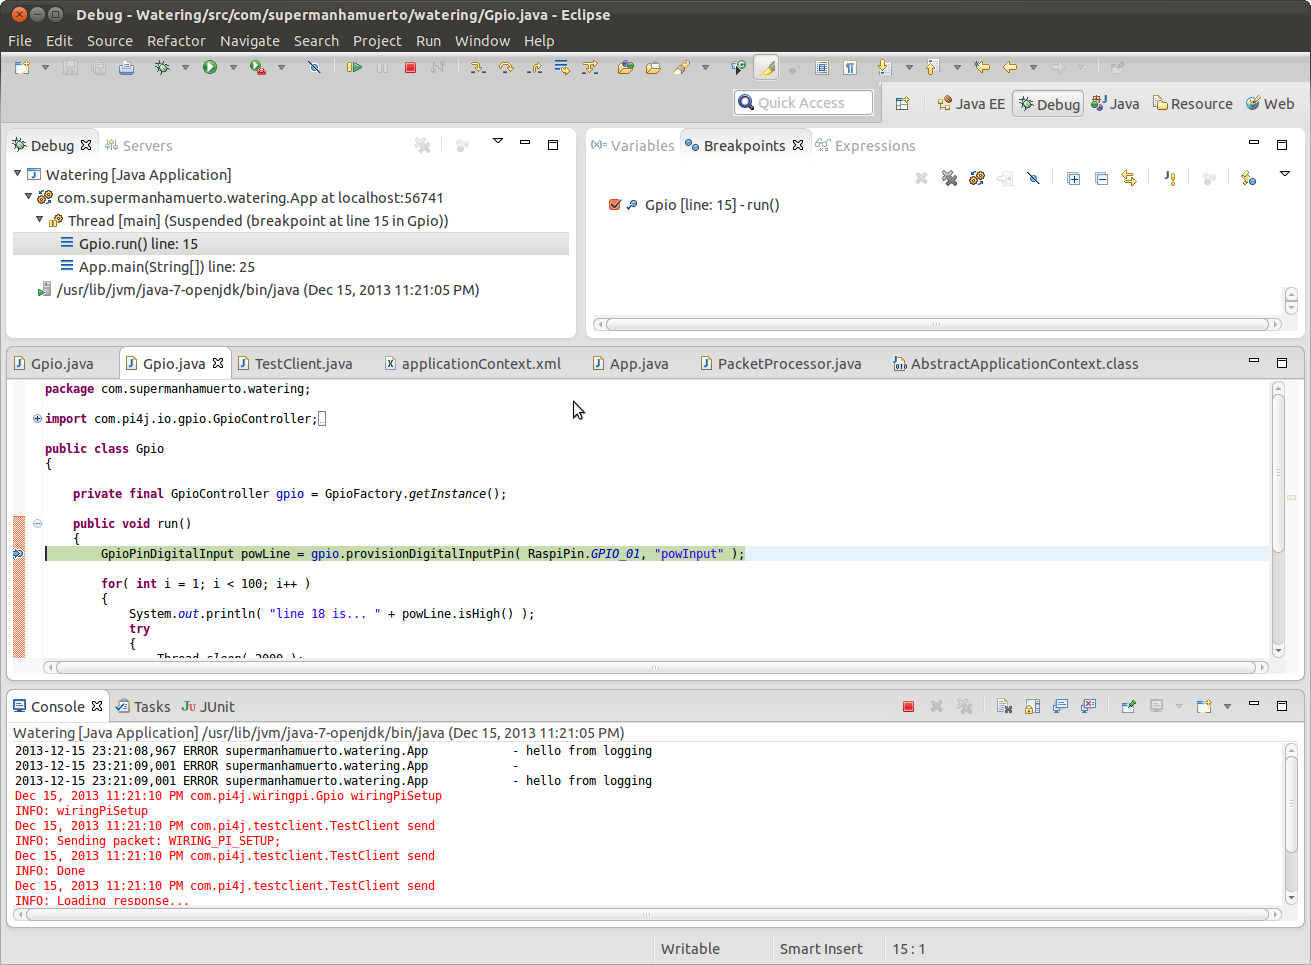 java:screenshot_at_2013-12-15_23_21_28.png